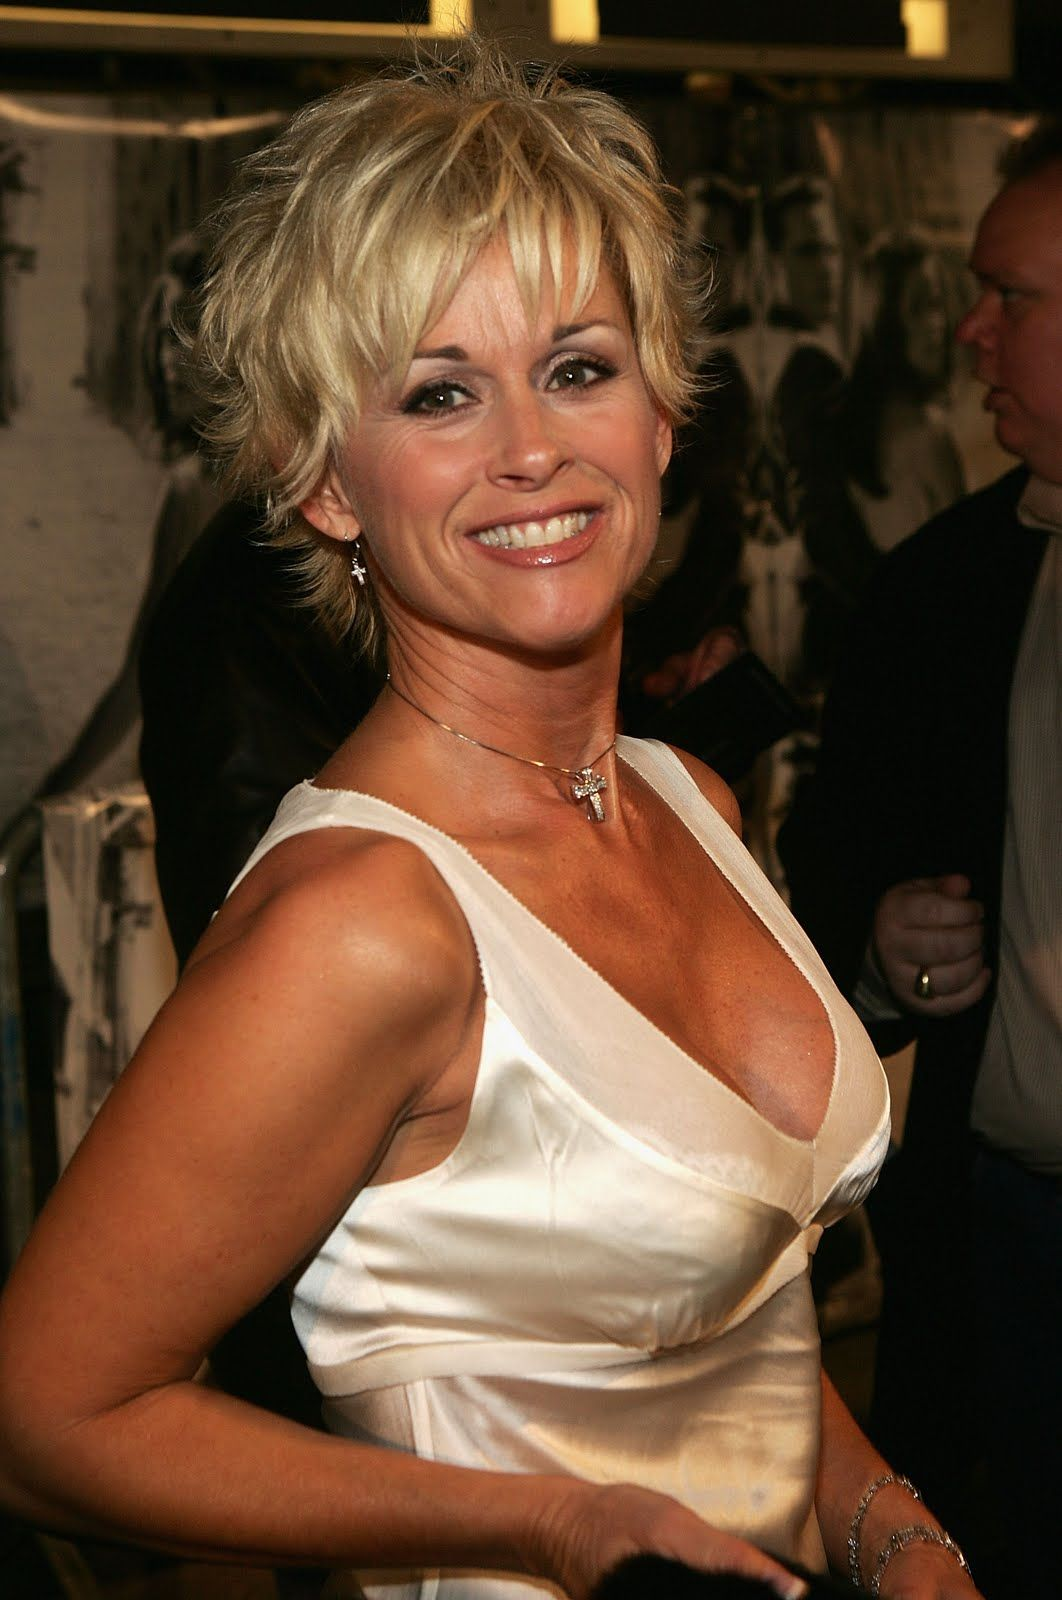 http://static0.therichestimages.com/wp-content/uploads/Lorrie-Morgan2.jpg